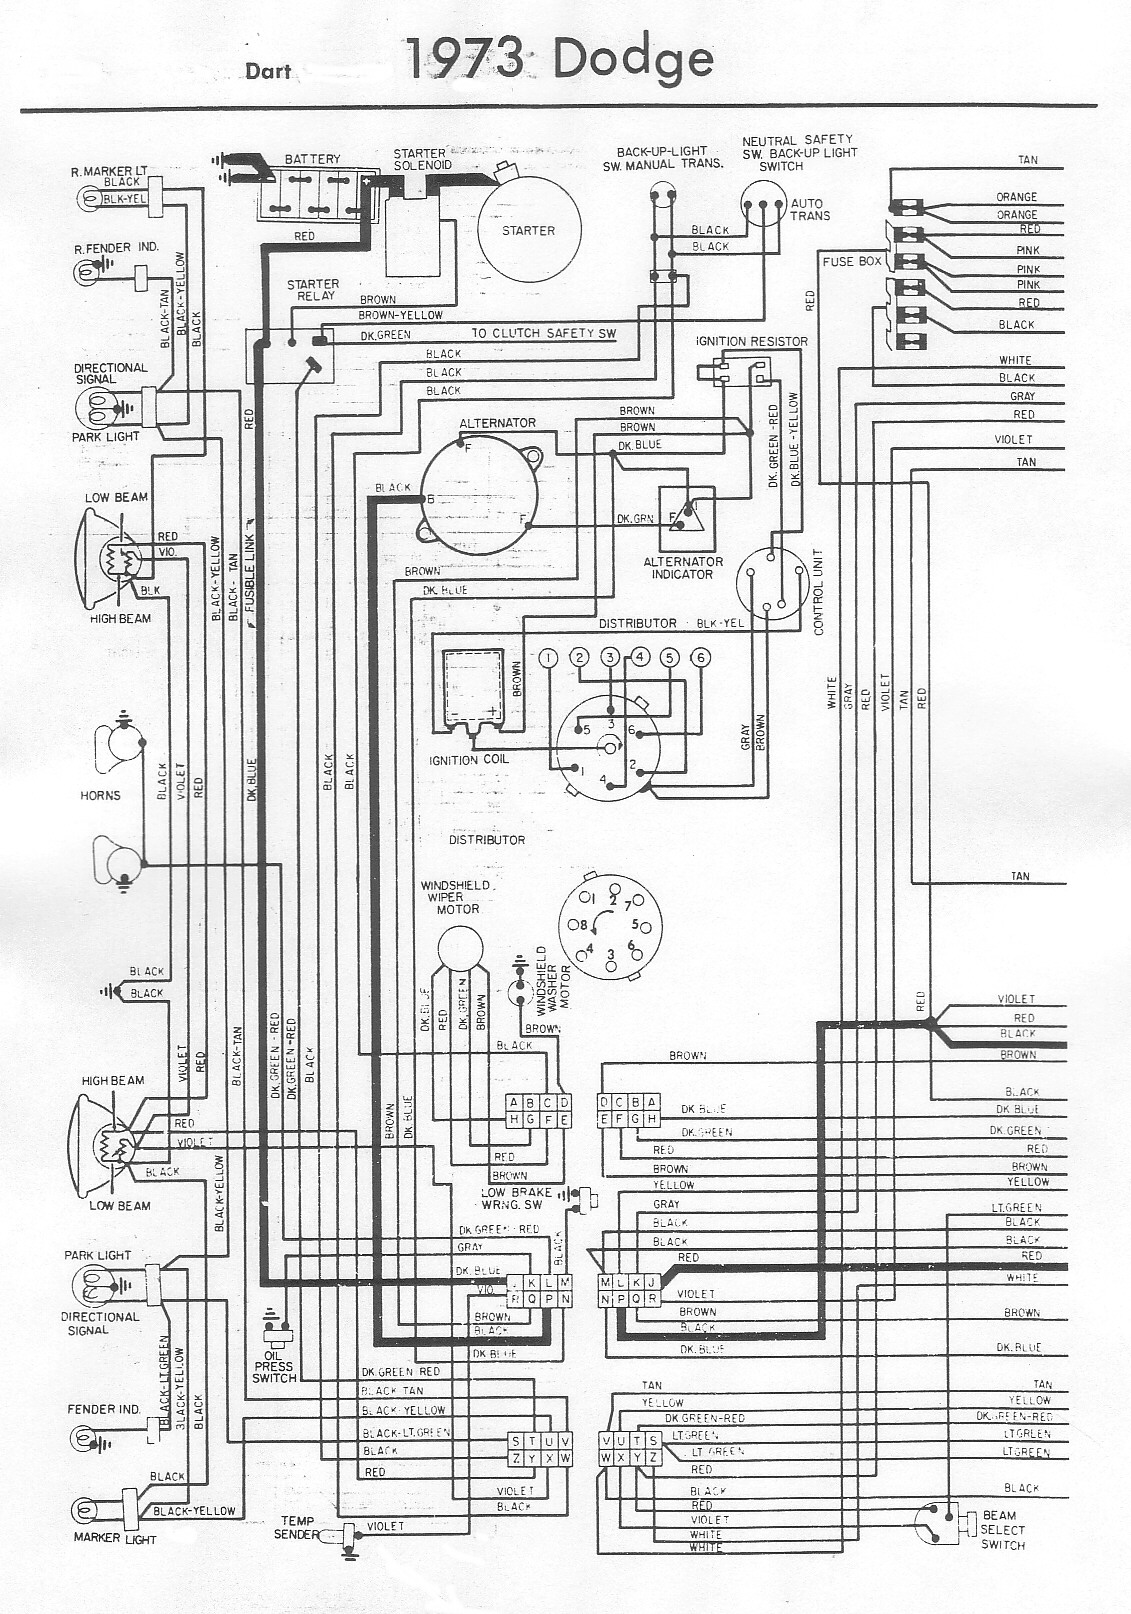 small resolution of wiring diagram for 1973 dodge dart wiring diagrams tar 1969 dodge dart wiring diagram 73 dodge